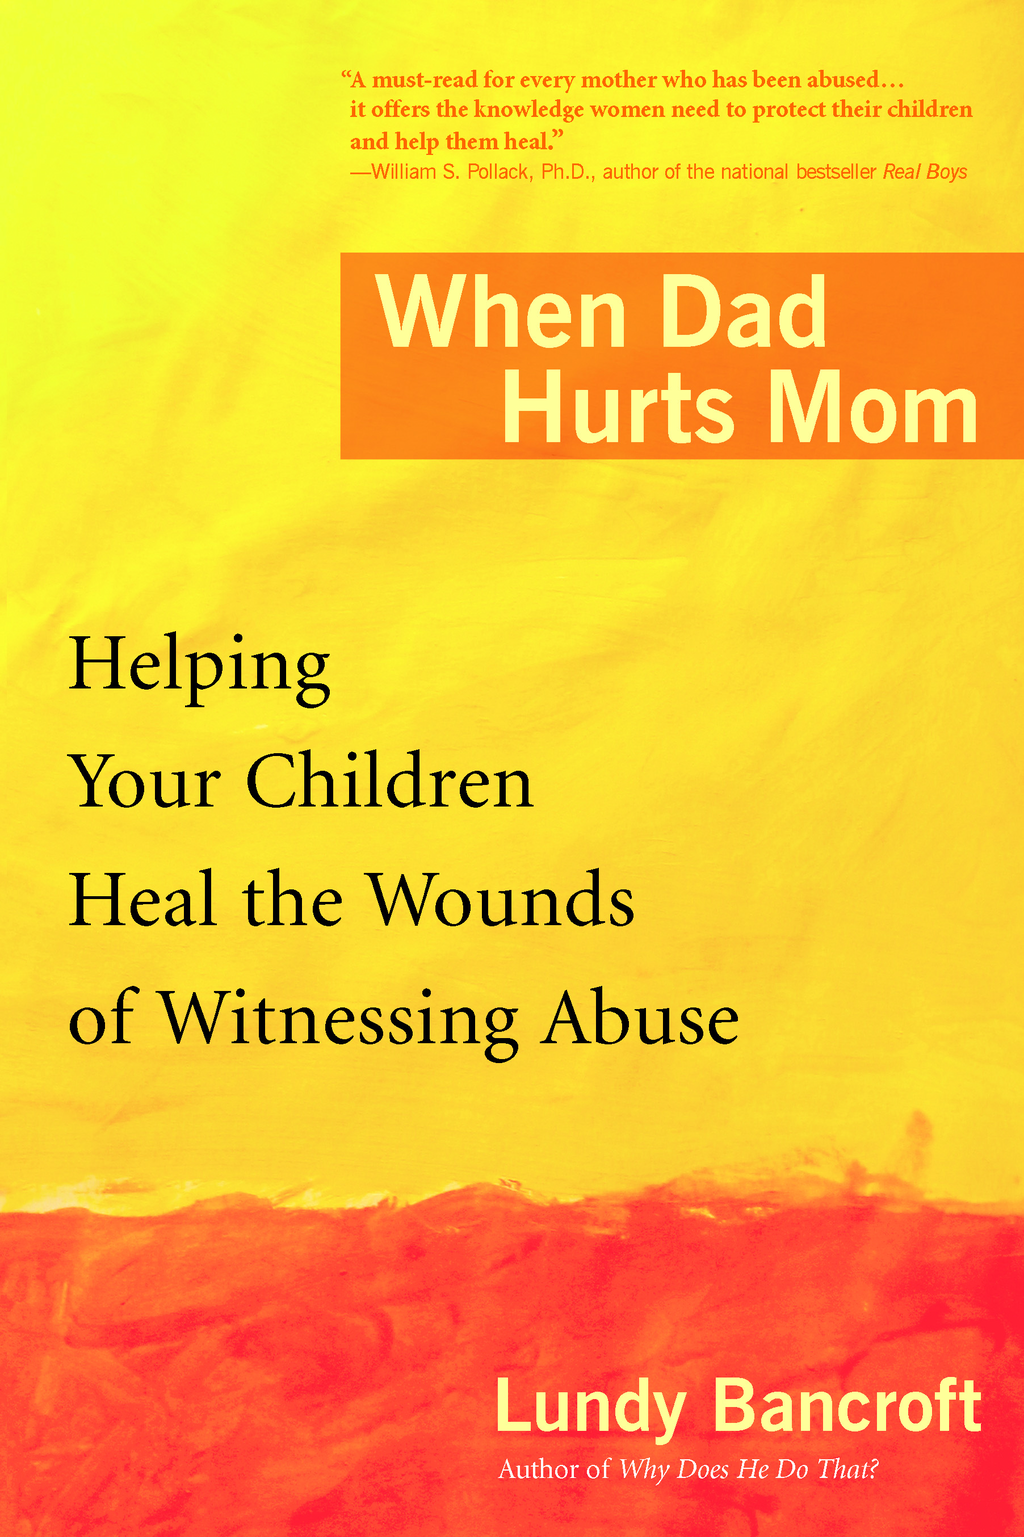 When Dad Hurts Mom: Helping Your Children Heal the Wounds of Witnessing Abuse By: Lundy Bancroft